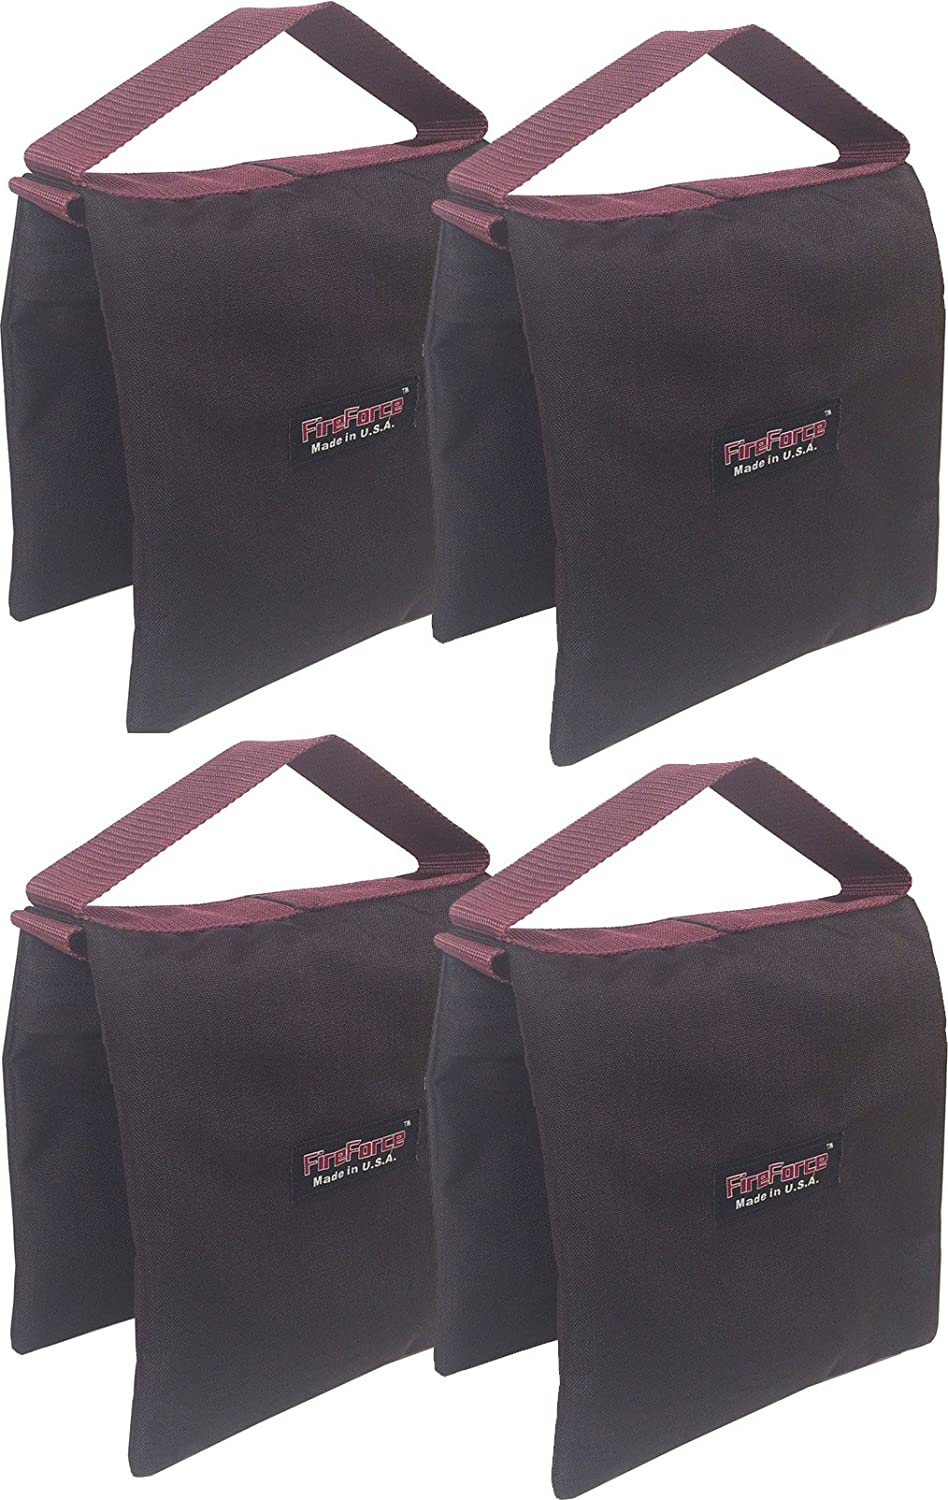 4 Each Fire Force Studio Tripod Stand Sandbags 20 lb Made in USA Color Black Empty